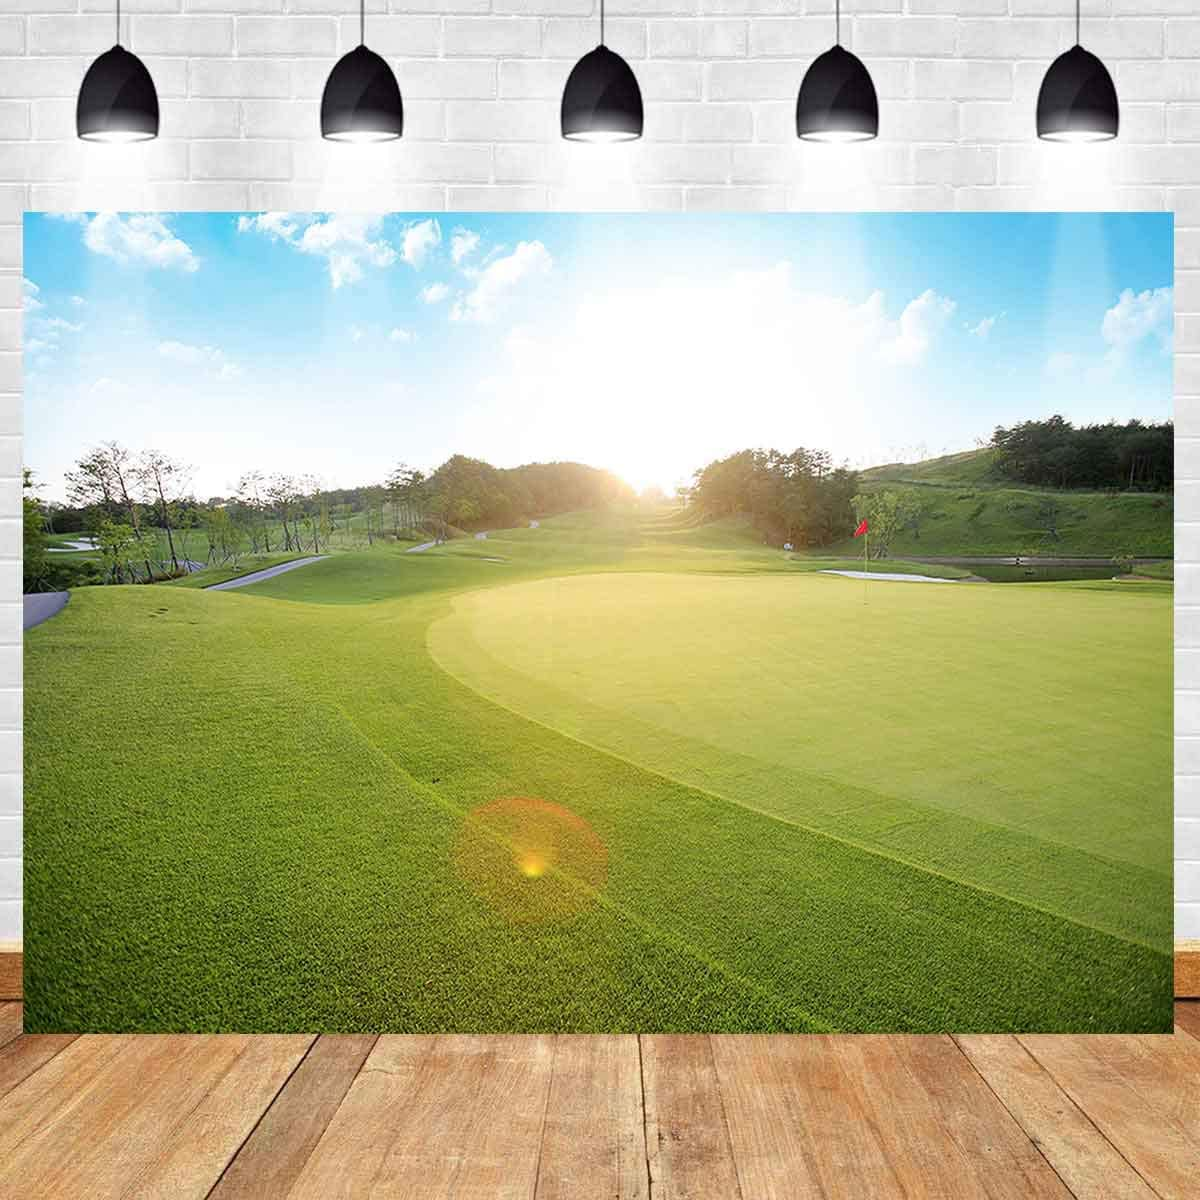 Amazon Com Golf Course Backdrop For Golf Birthday Party Meetsioy 7x5ft Meadow Blue Sky White Clouds Photography Background For Golf Sports Party Photo Booth Youtube Backdrop Huimt417 Camera Photo